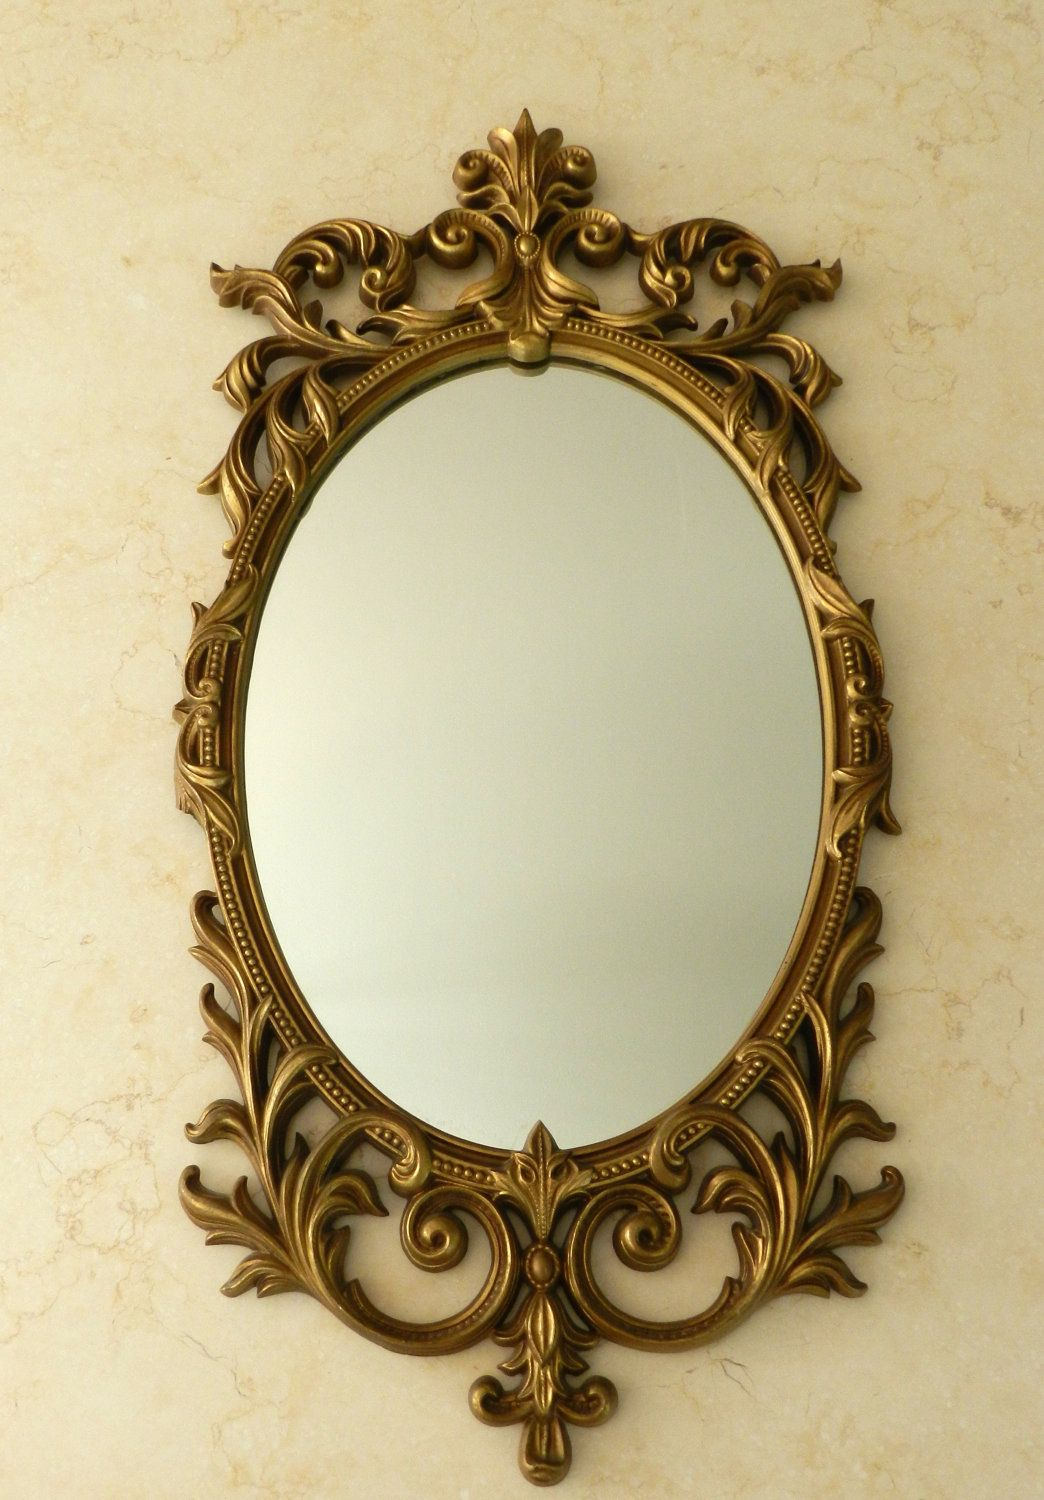 Vintage Gold Mirror Large Hanging Ornate Decorative Turner - Decorative gold mirrors